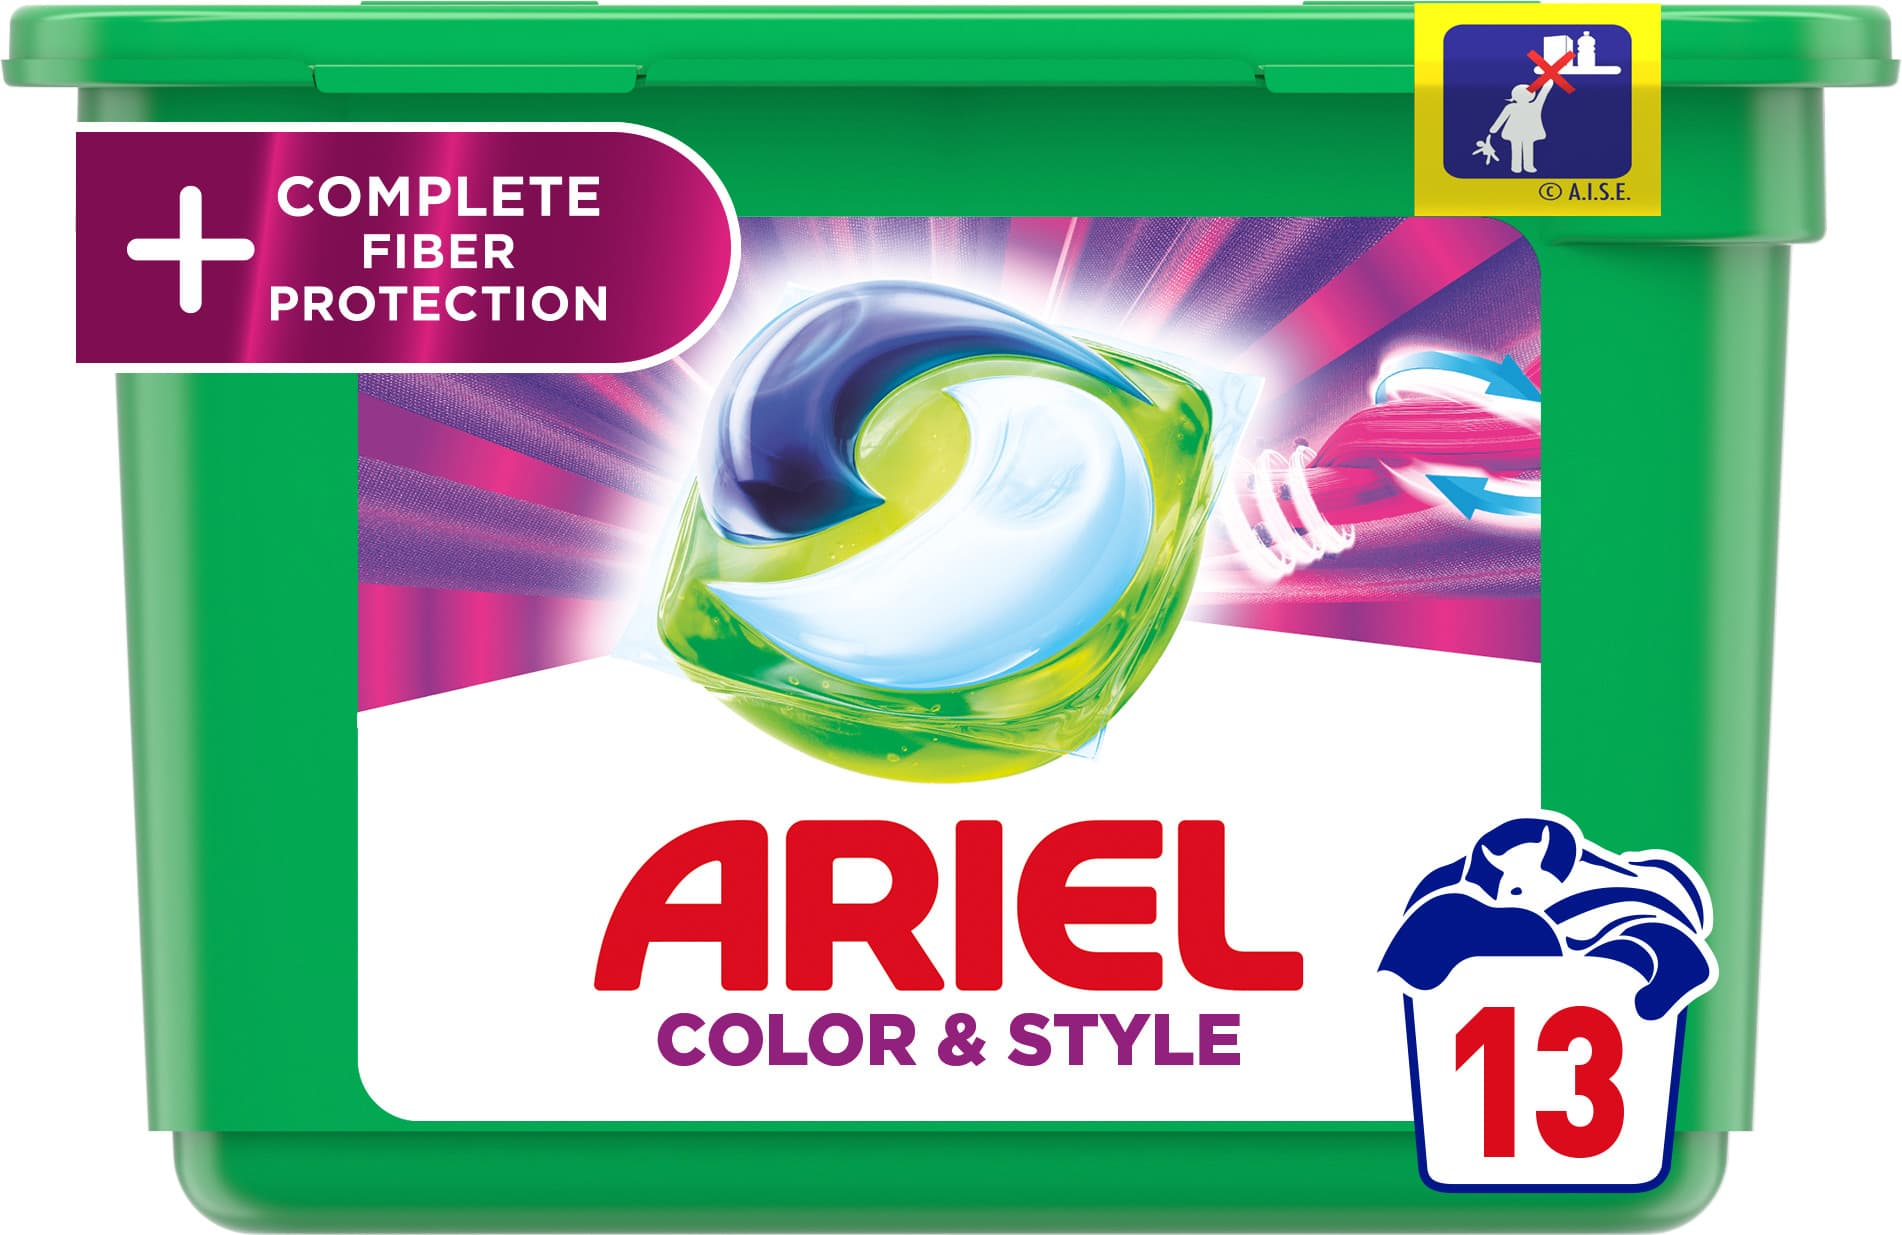 Ariel gelové kapsle All in 1 Color Complete Fiber Protection 13ks